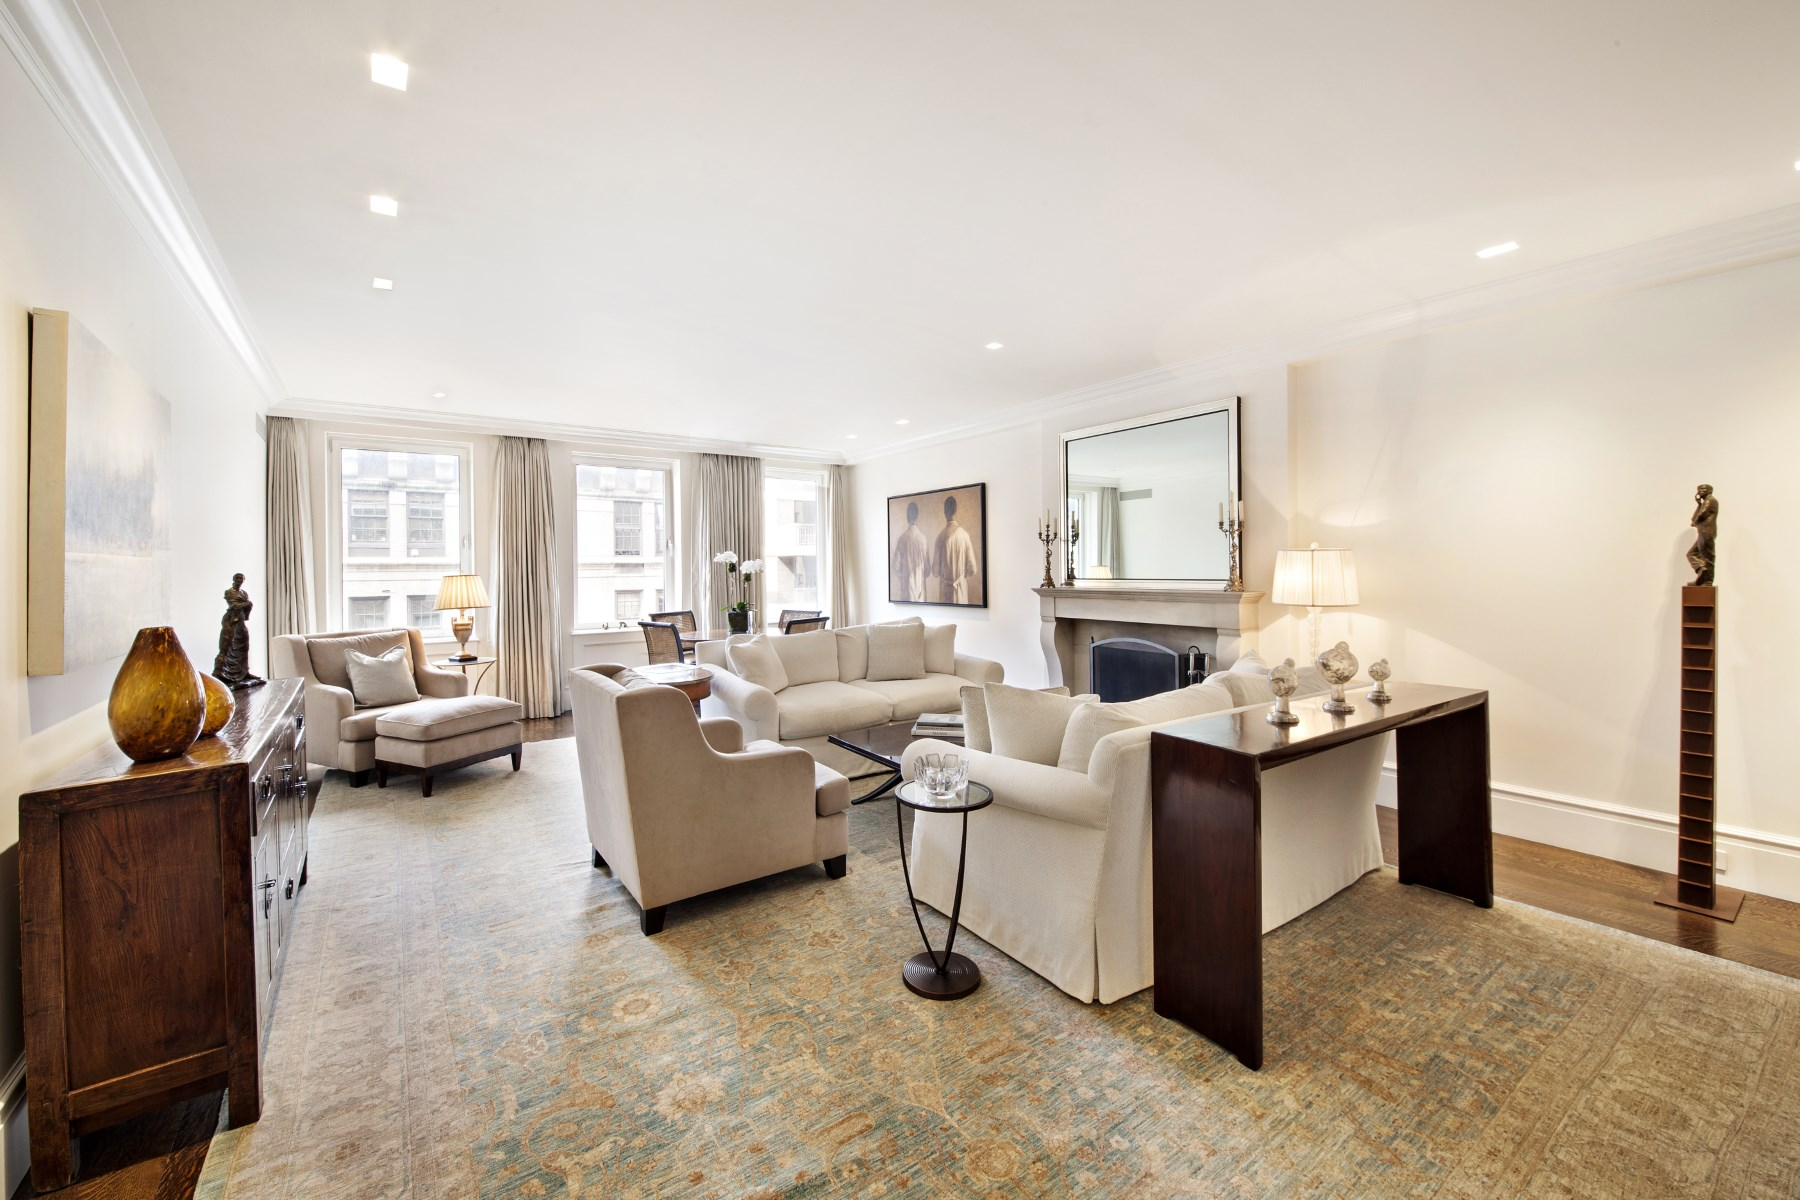 Co-op for Sale at Pre-War Park Avenue Perfection 1100 Park Avenue Apt 15C Upper East Side, New York, New York, 10128 United States